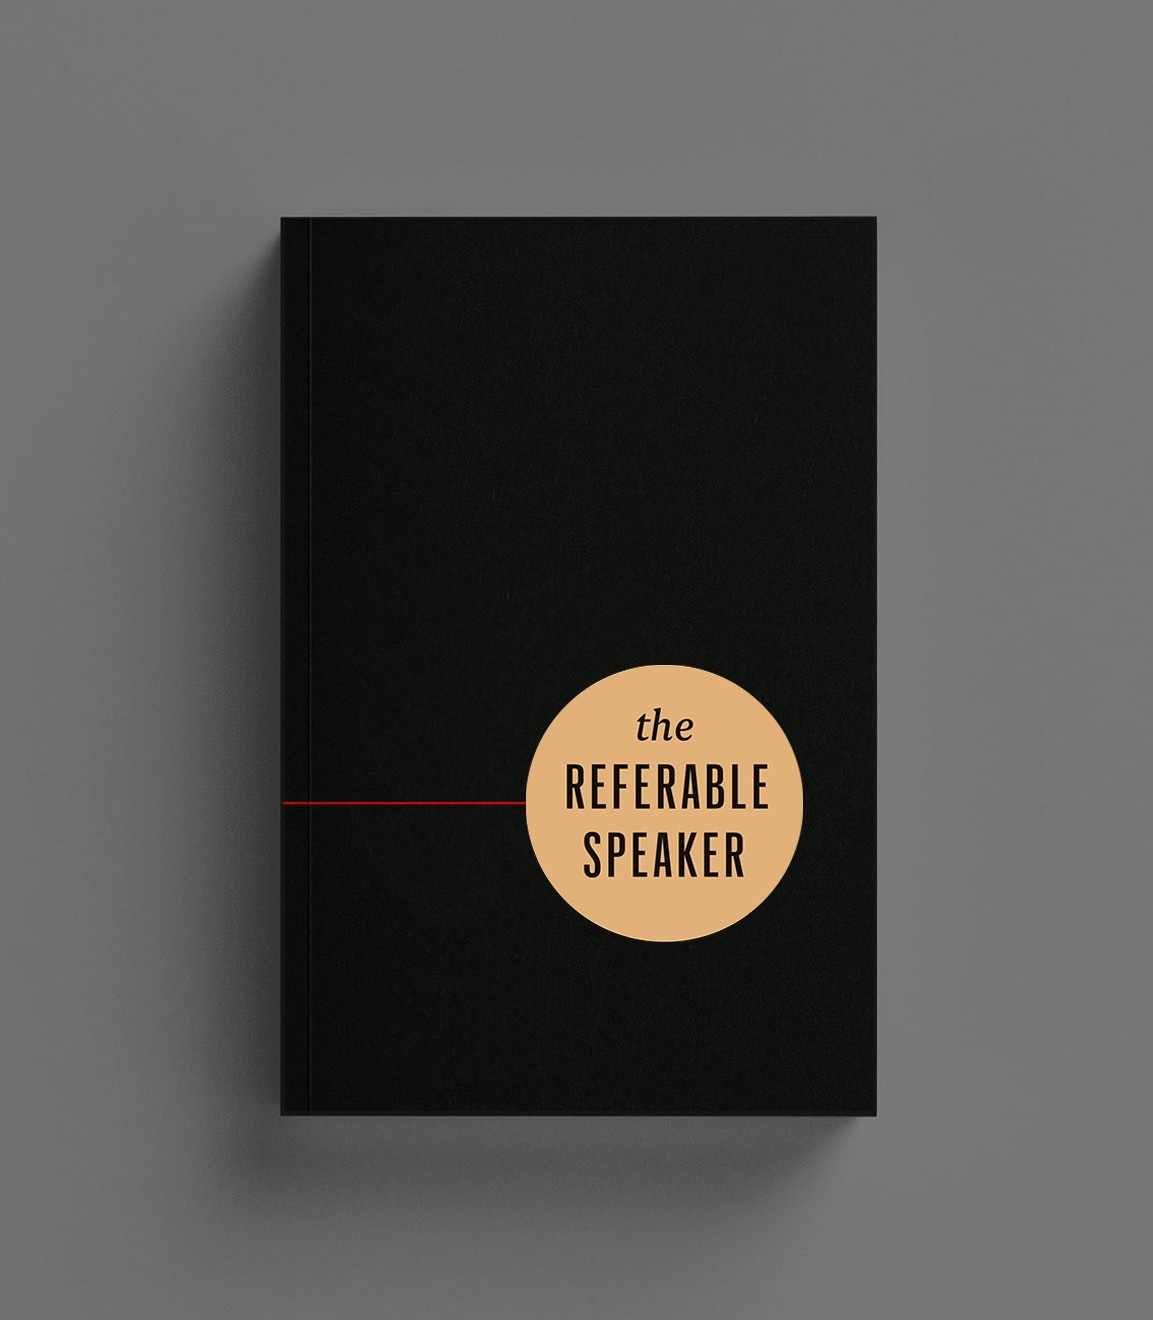 the REFERABLE SPEAKER book